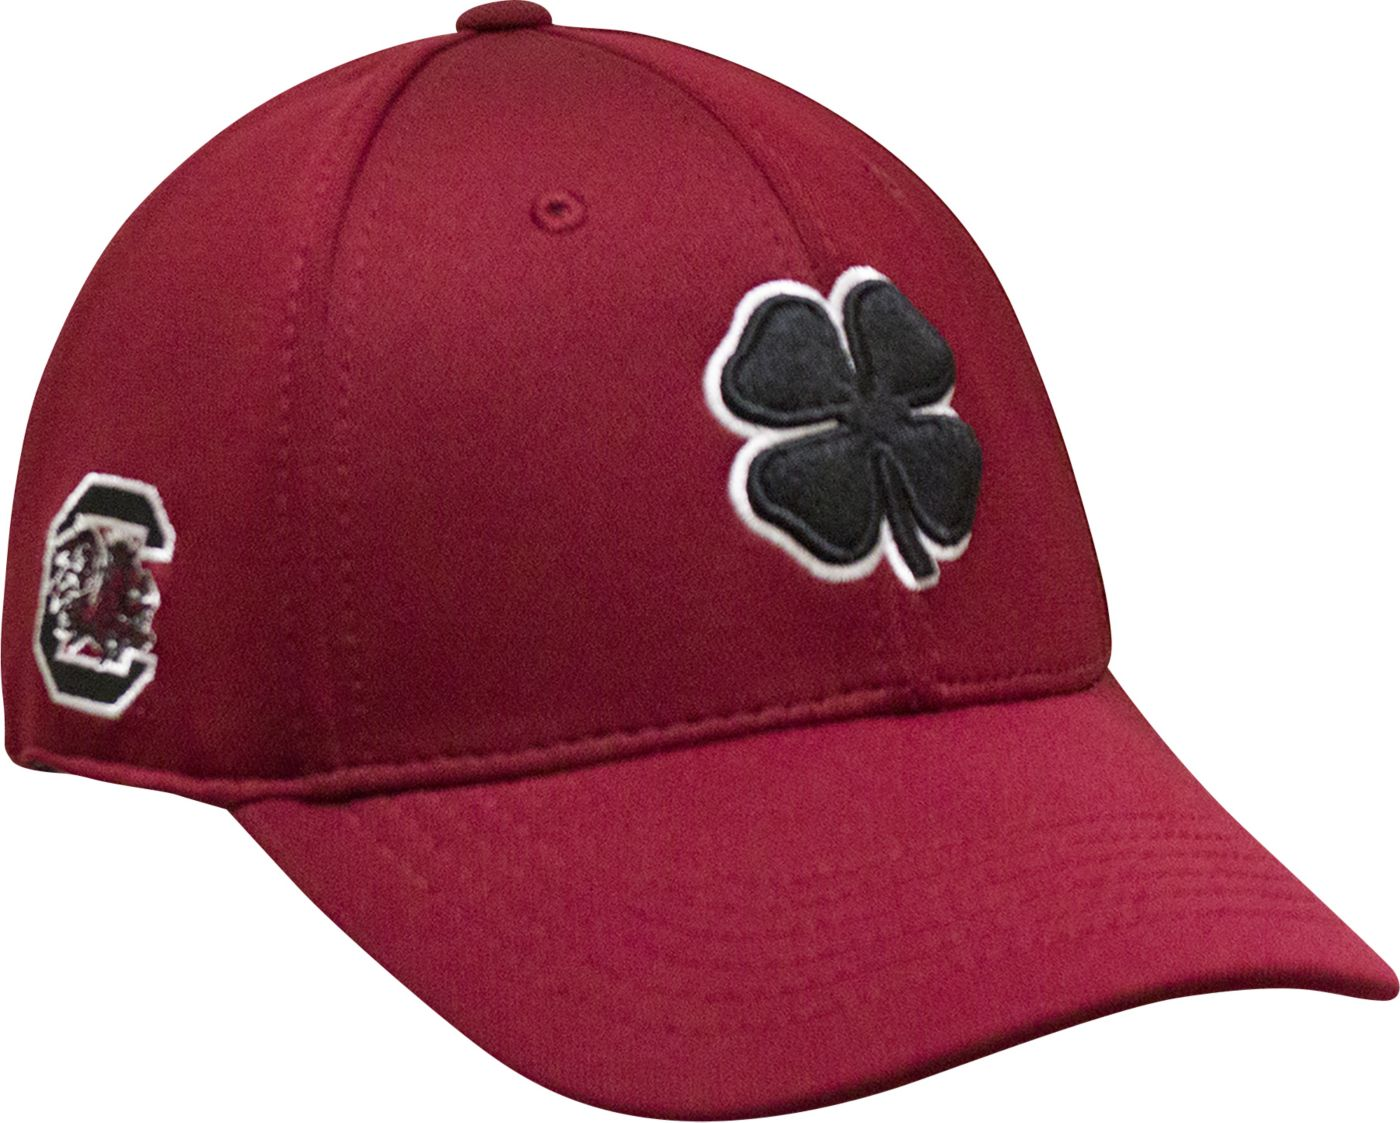 Black Clover Men's South Carolina Premium Golf Hat